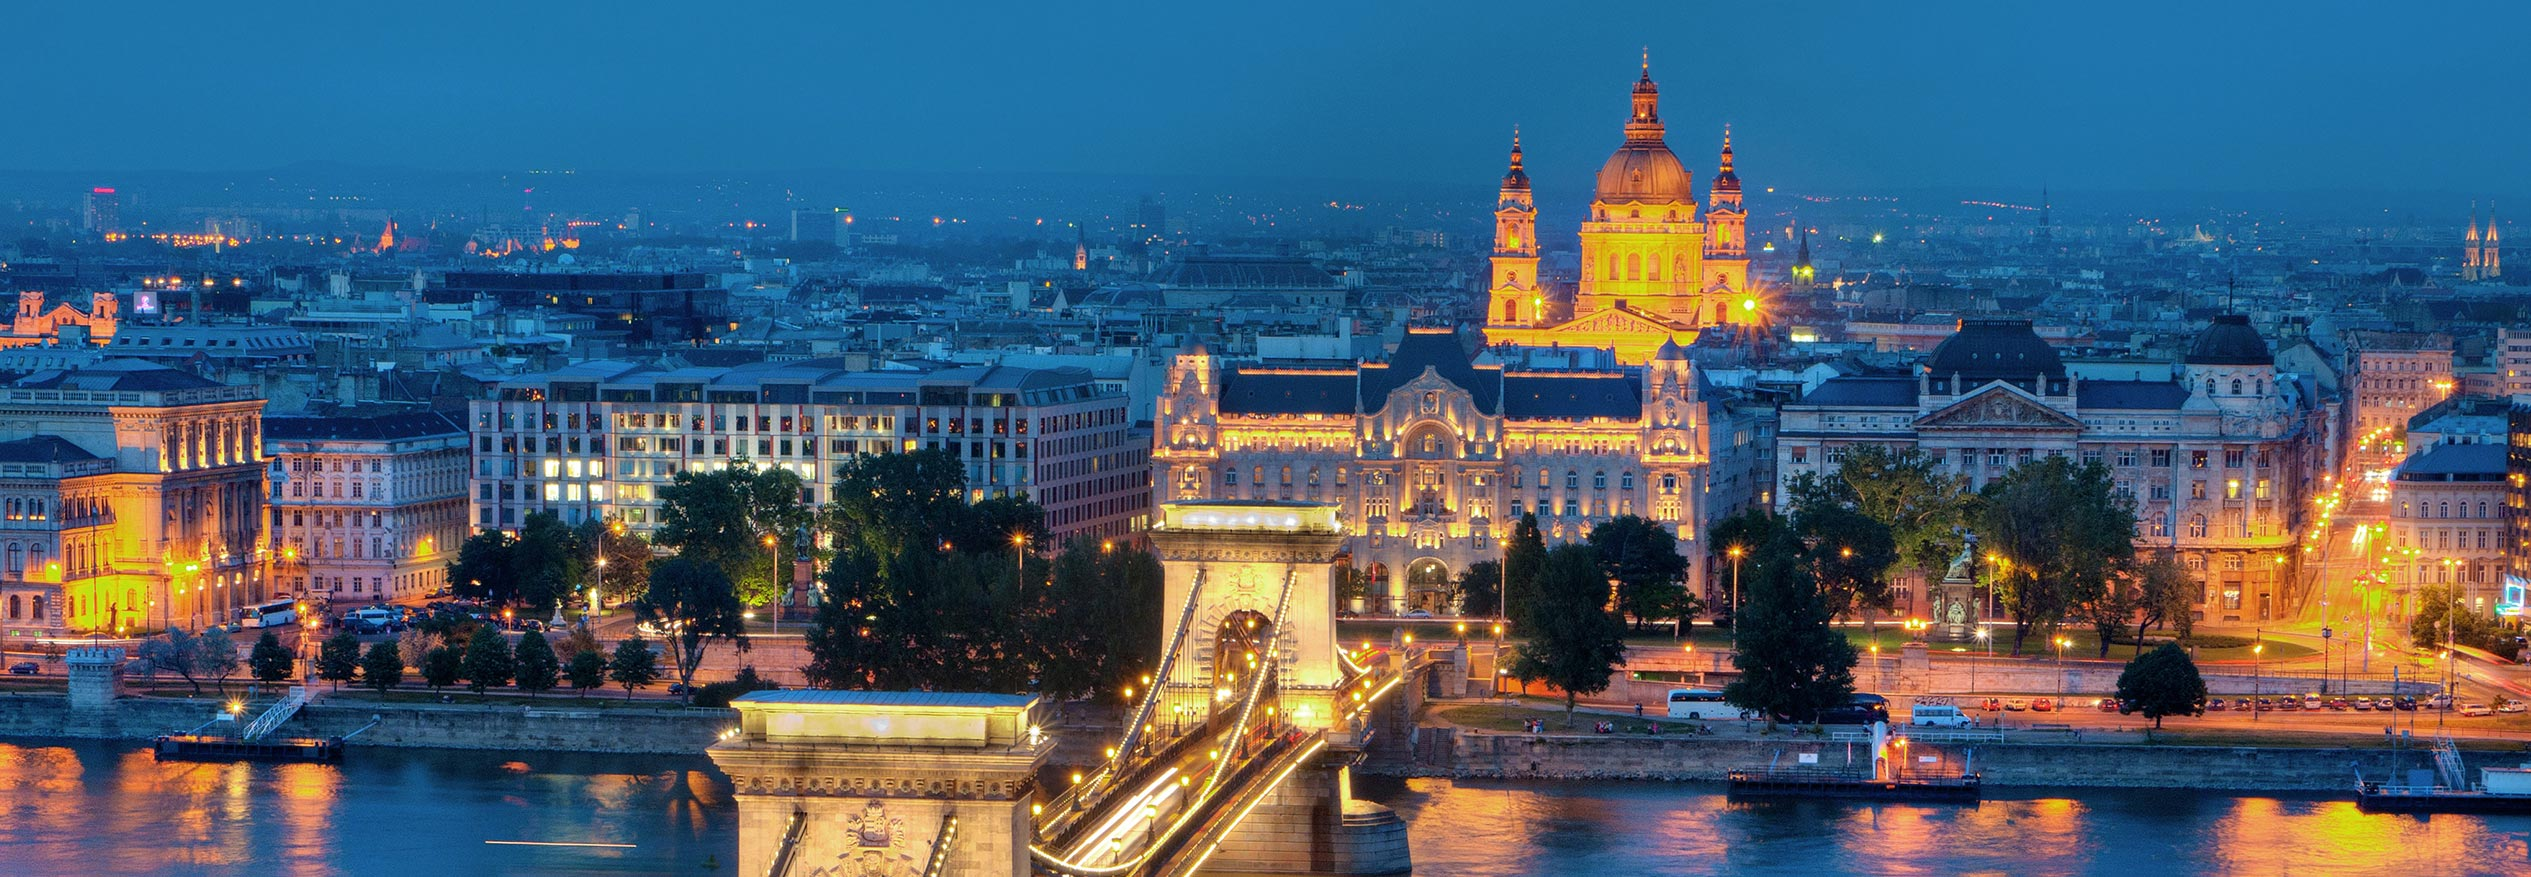 car hire rentals hungary city night